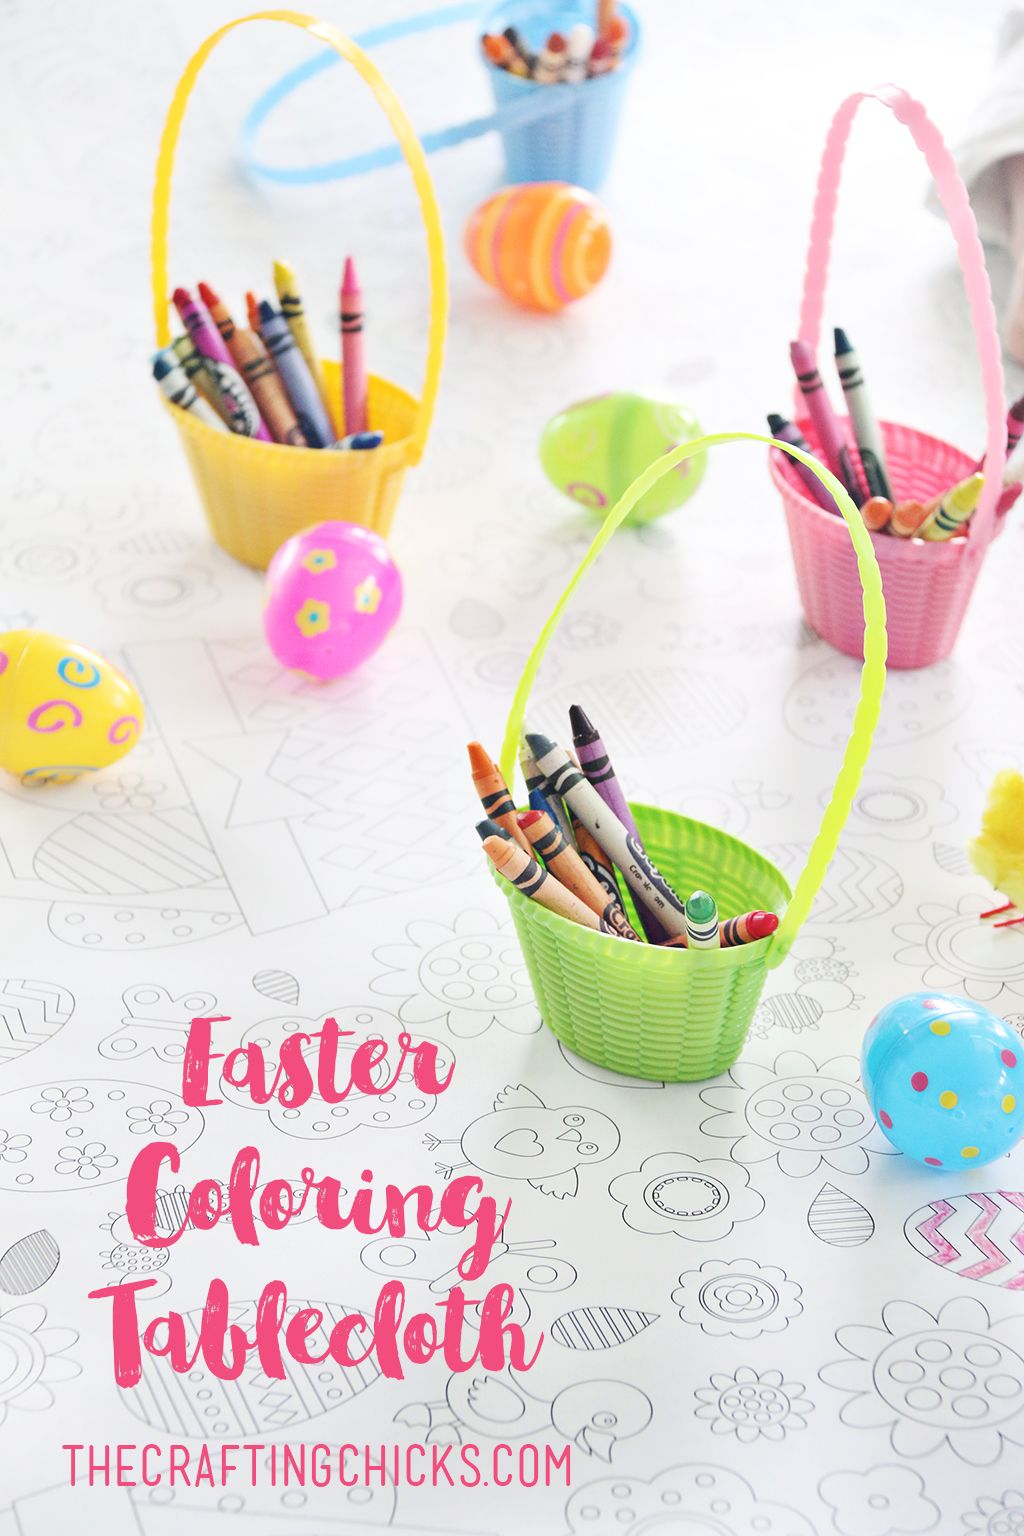 Easter Coloring Tablecloth | Easter colouring, Easter dinner and Easter